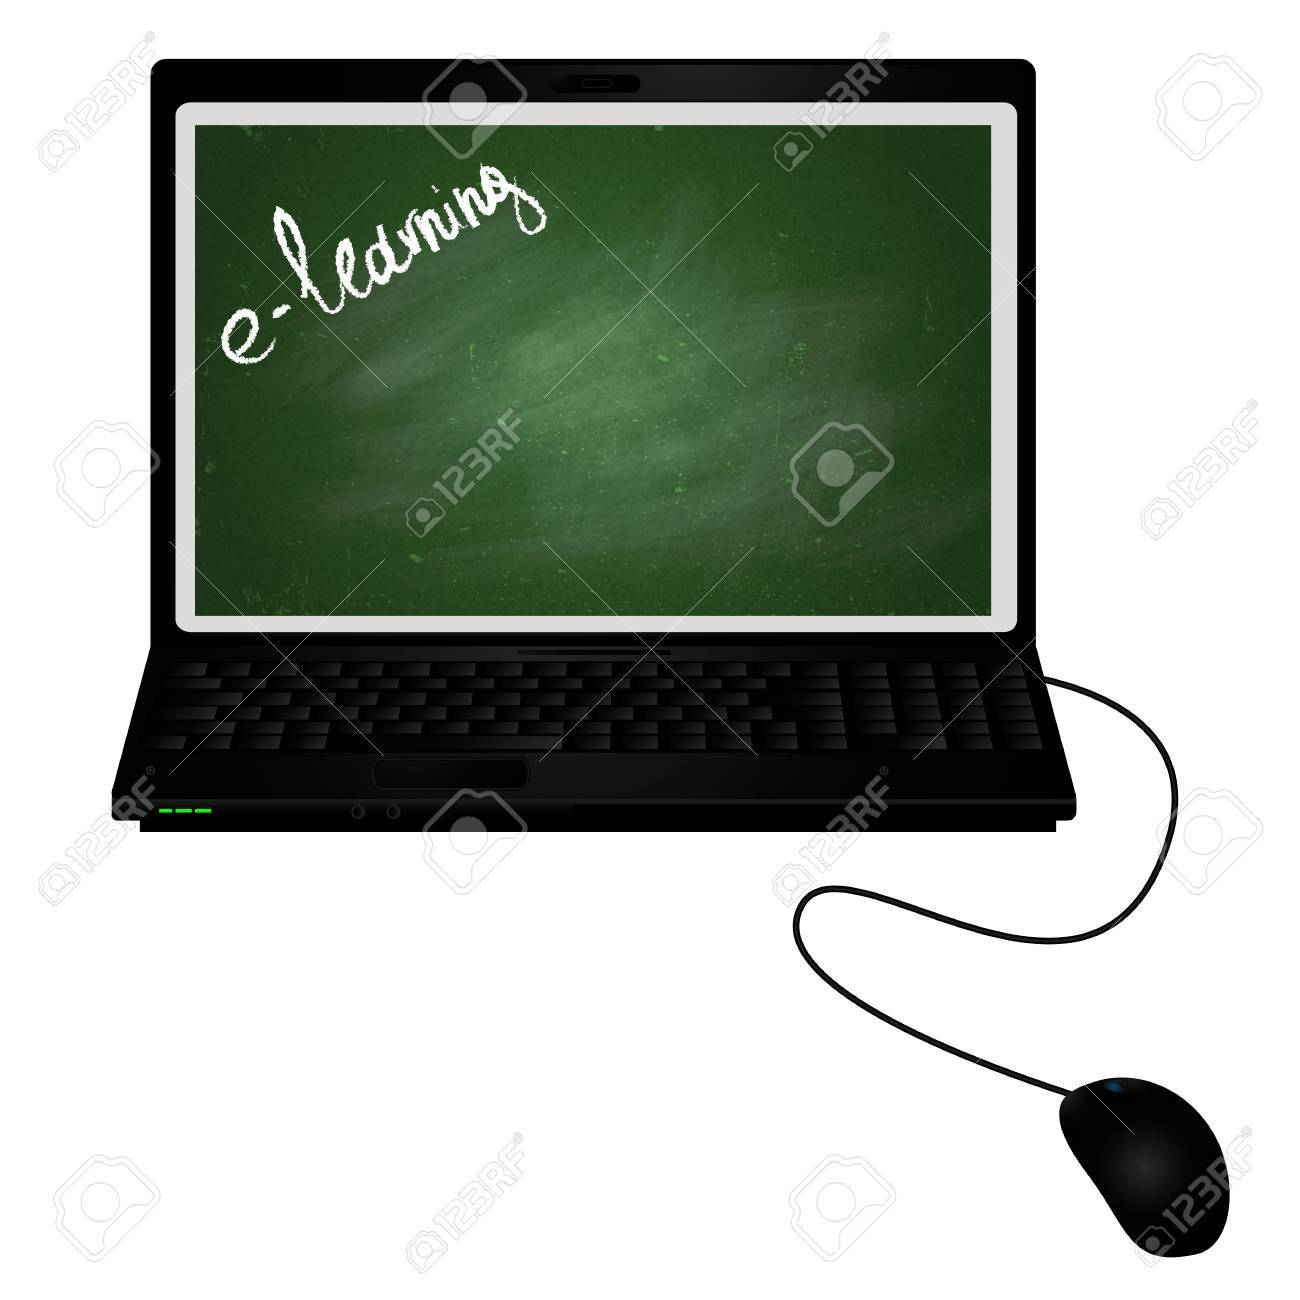 Lap top with chalkboard on the screen, e-learning with chalk Stock Photo - 13746337